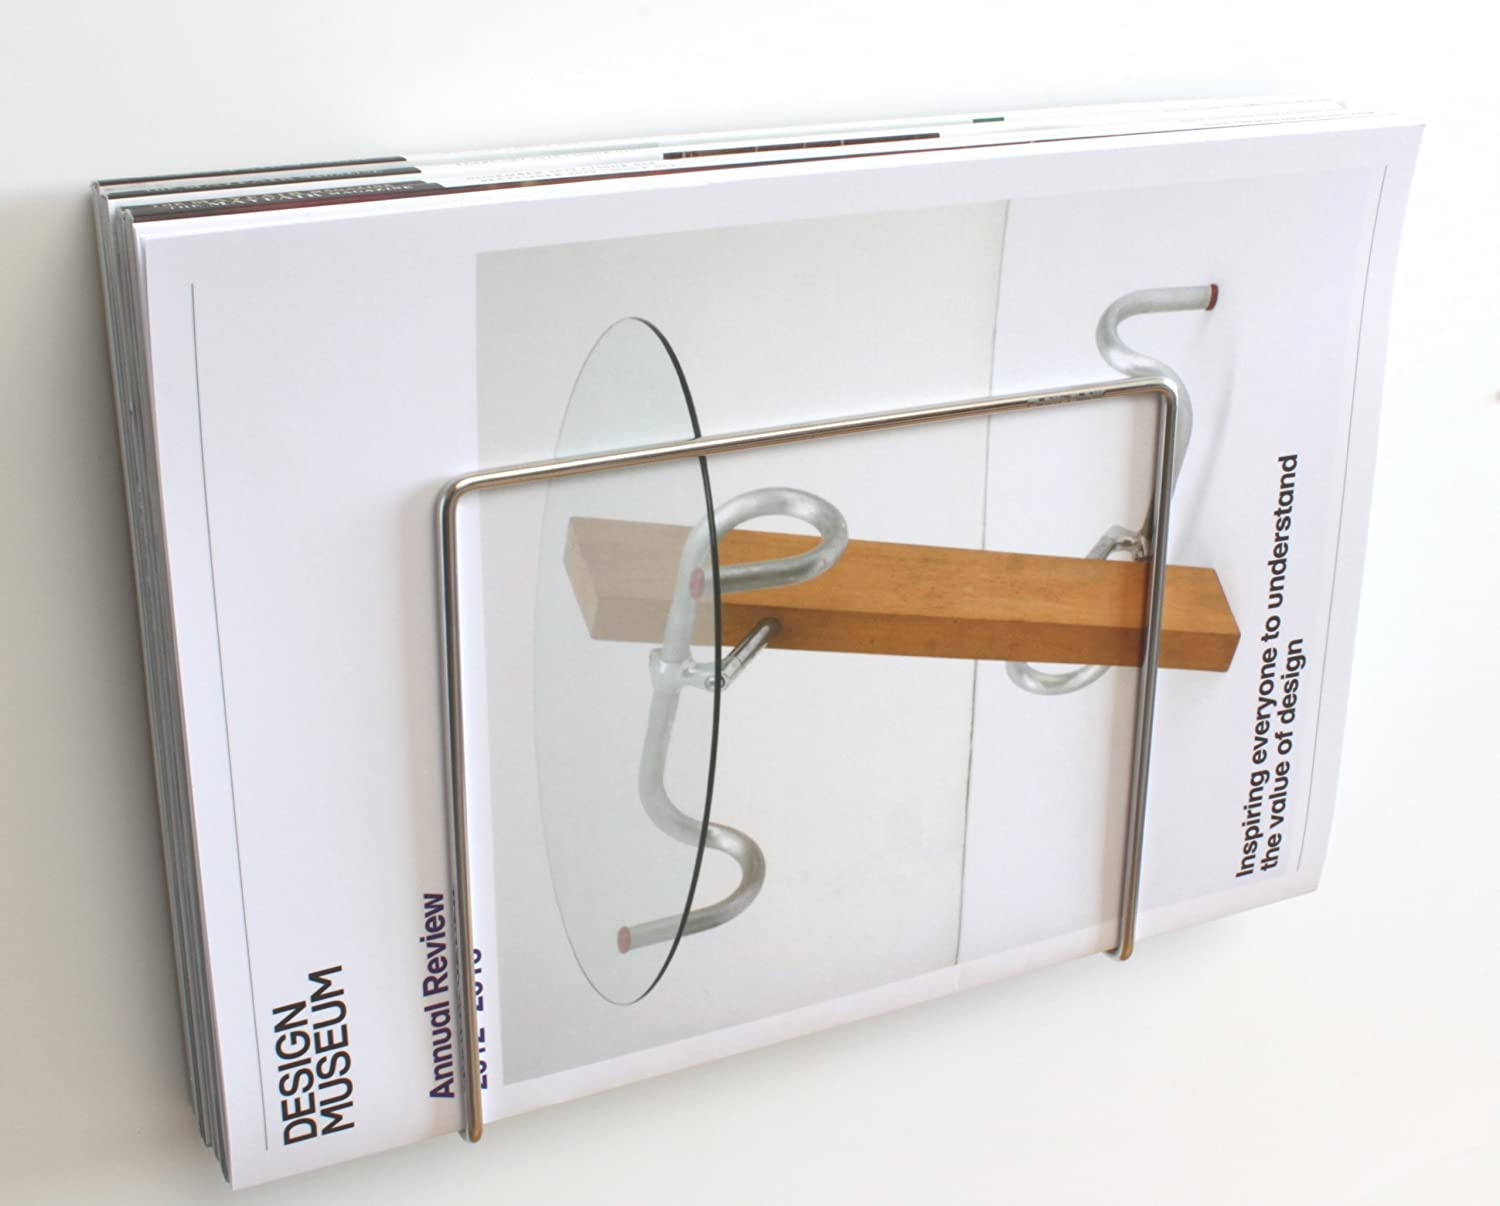 Excellent Amazon.com: Plew Plew stainless steel BATHROOM MAGAZINE HOLDER  TL46